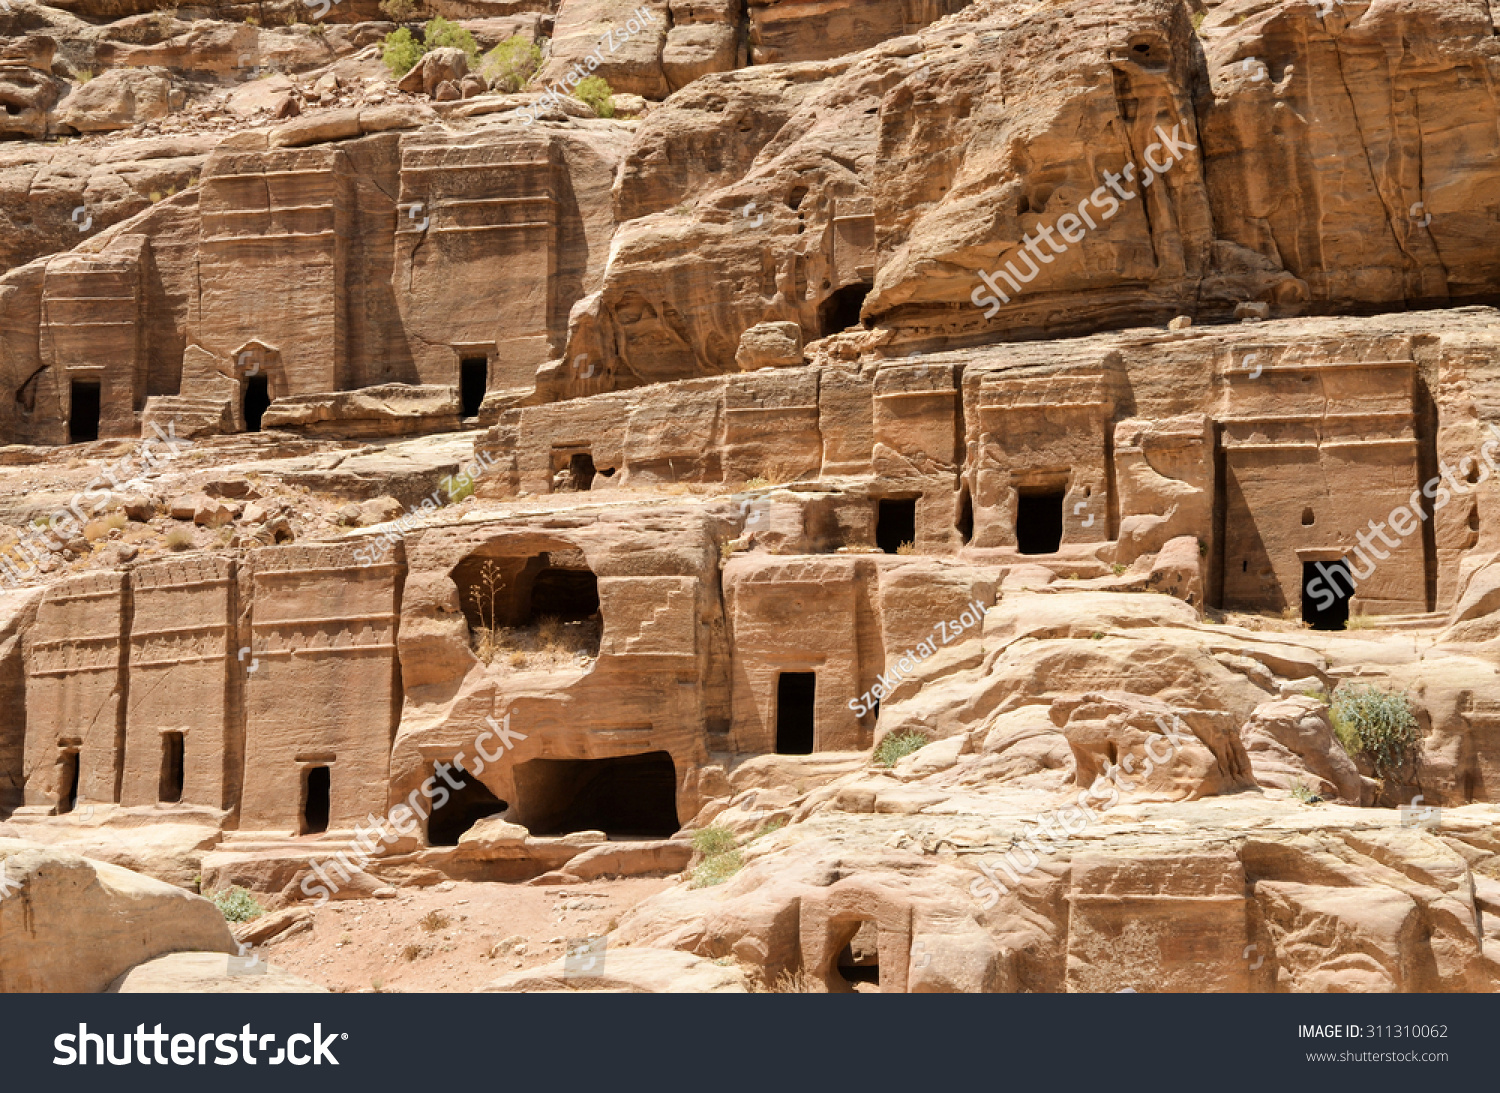 The ancient city, the capital of Idumea (Edom), later the capital of Nabatean 61